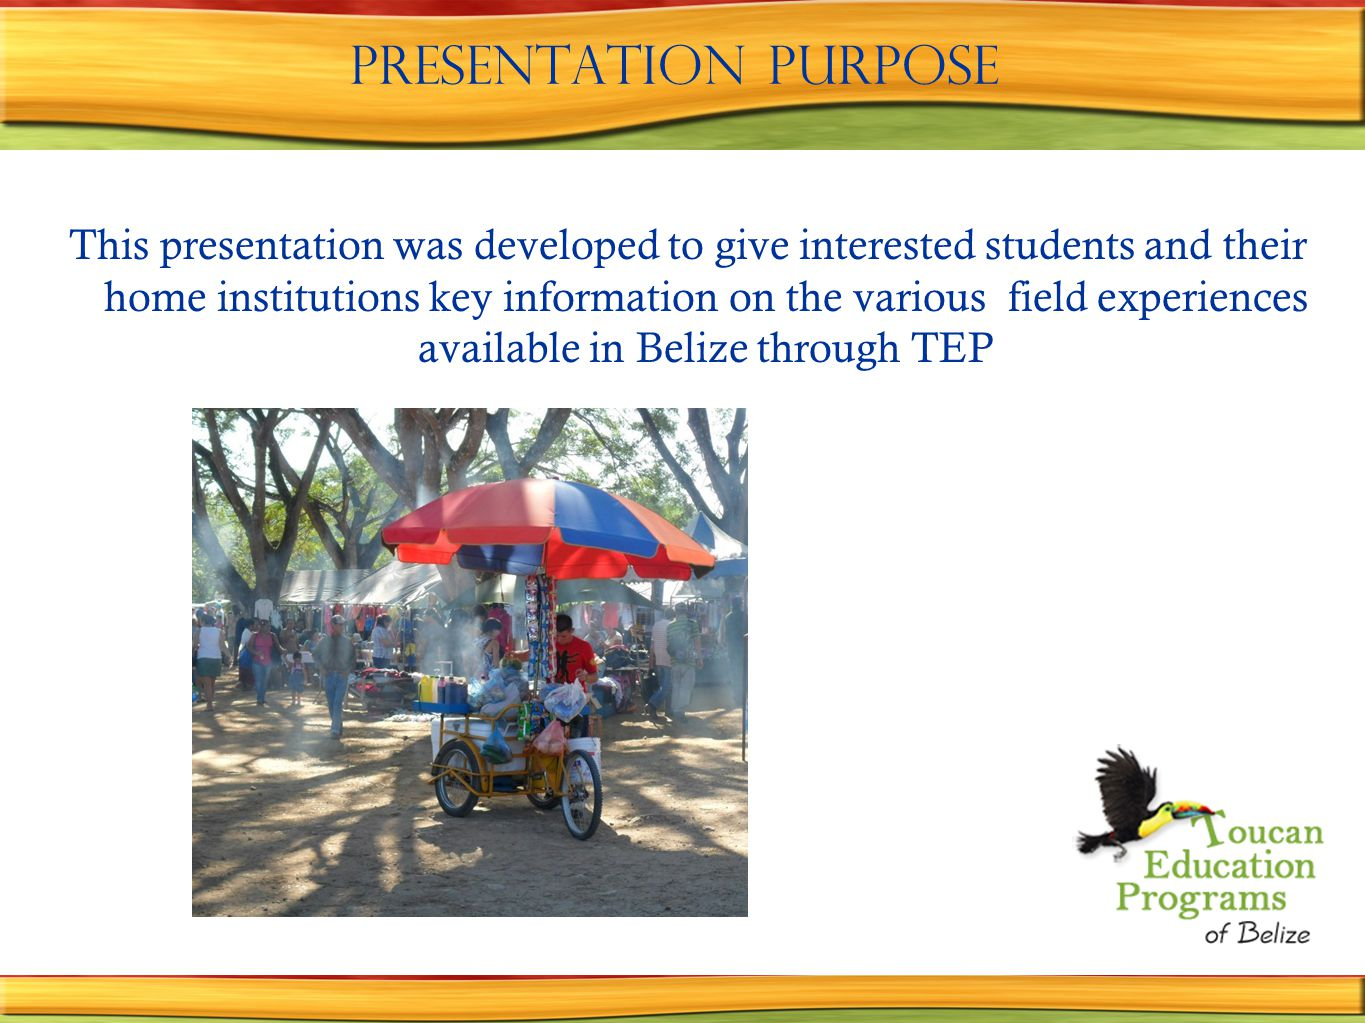 Presentation purpose This presentation was developed to give interested students and their home institutions key information on the various field experiences available in Belize through TEP